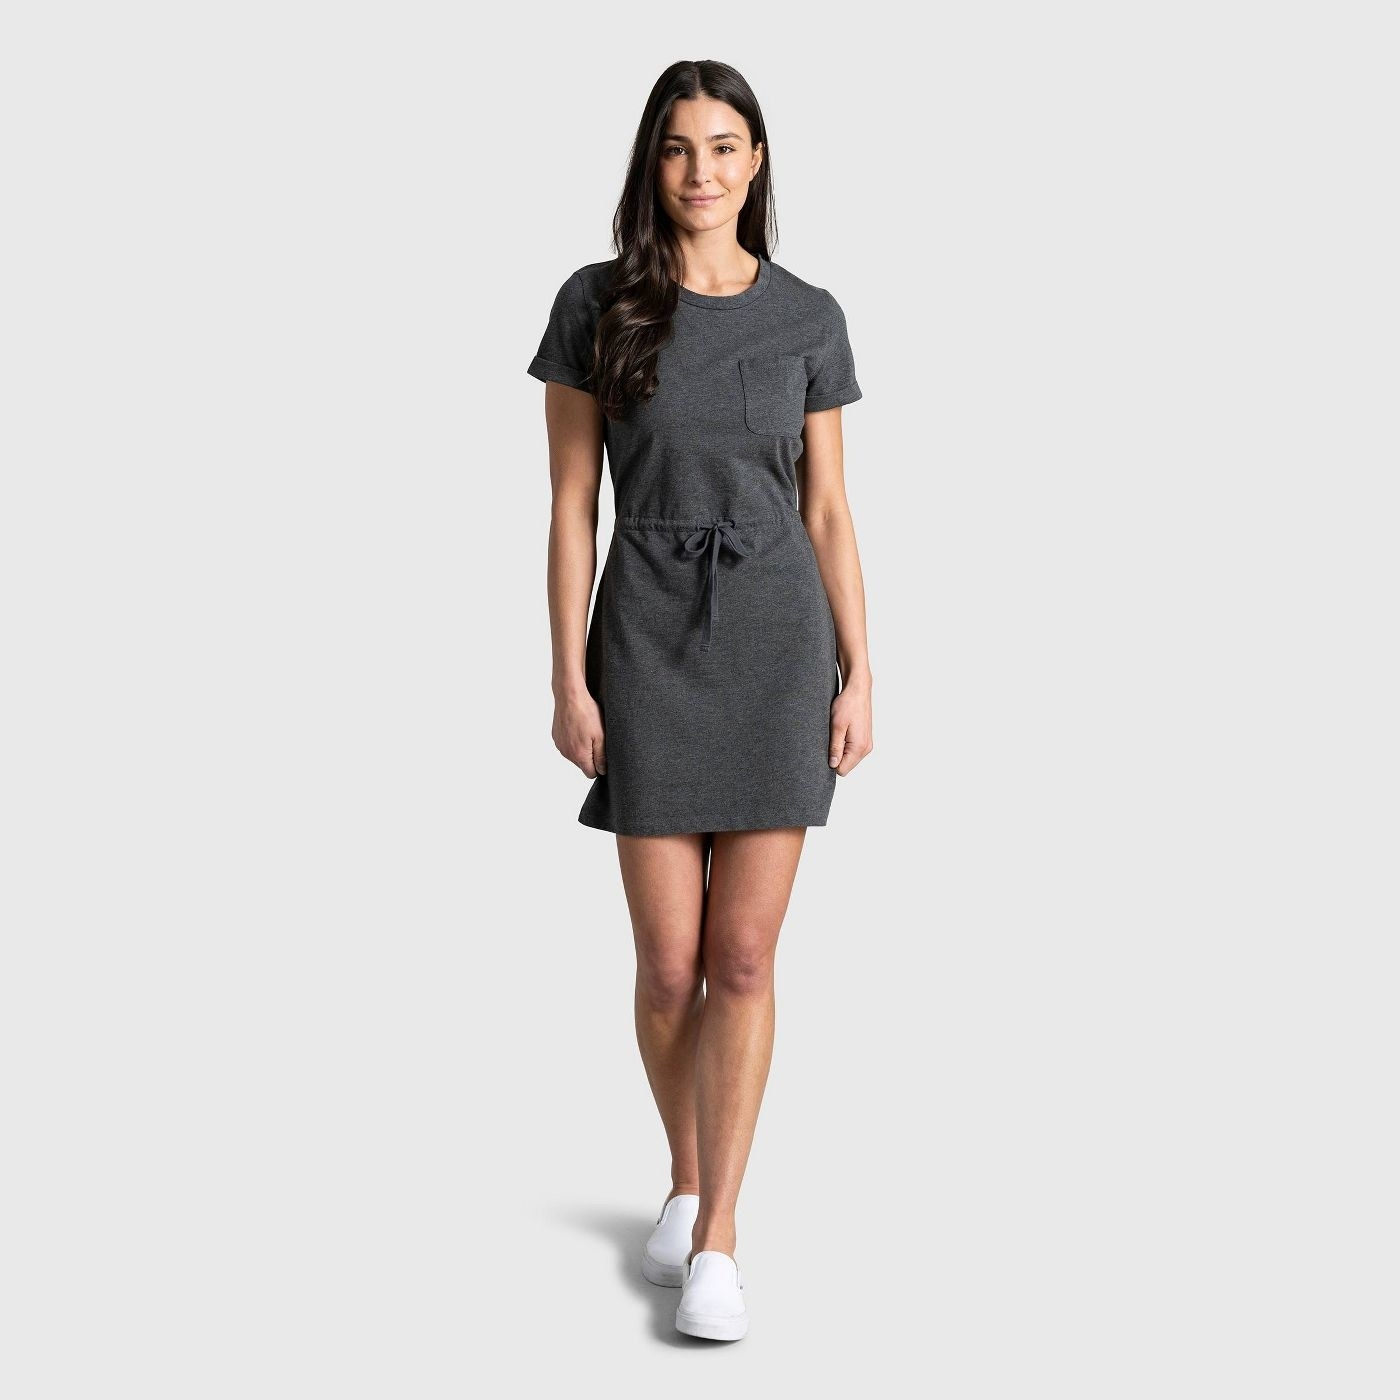 Model wearing short sleeve charcoal dress with pocket